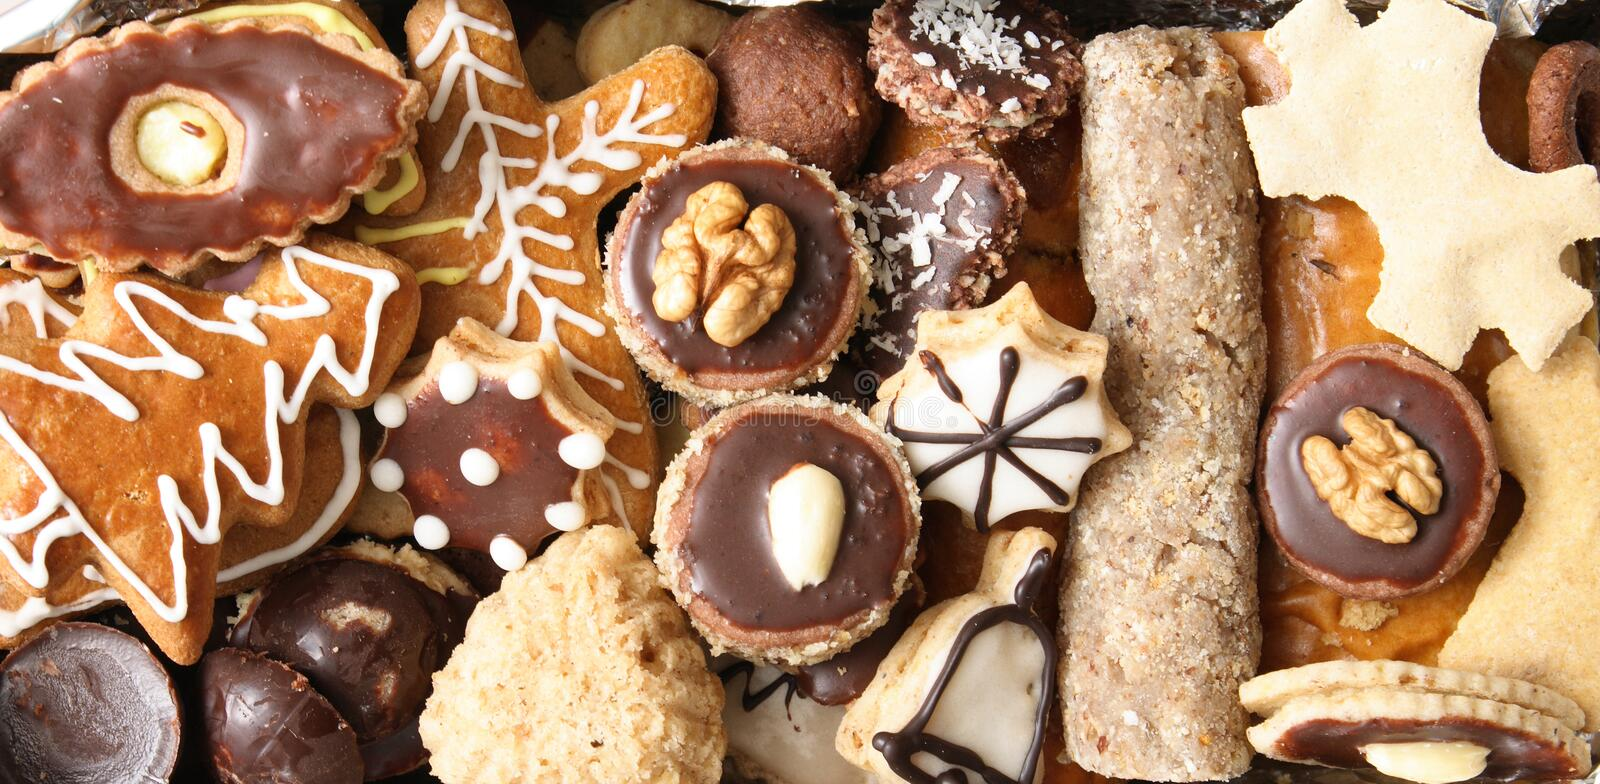 Download Xmas cokies stock image. Image of hundred, food, bake - 10763489